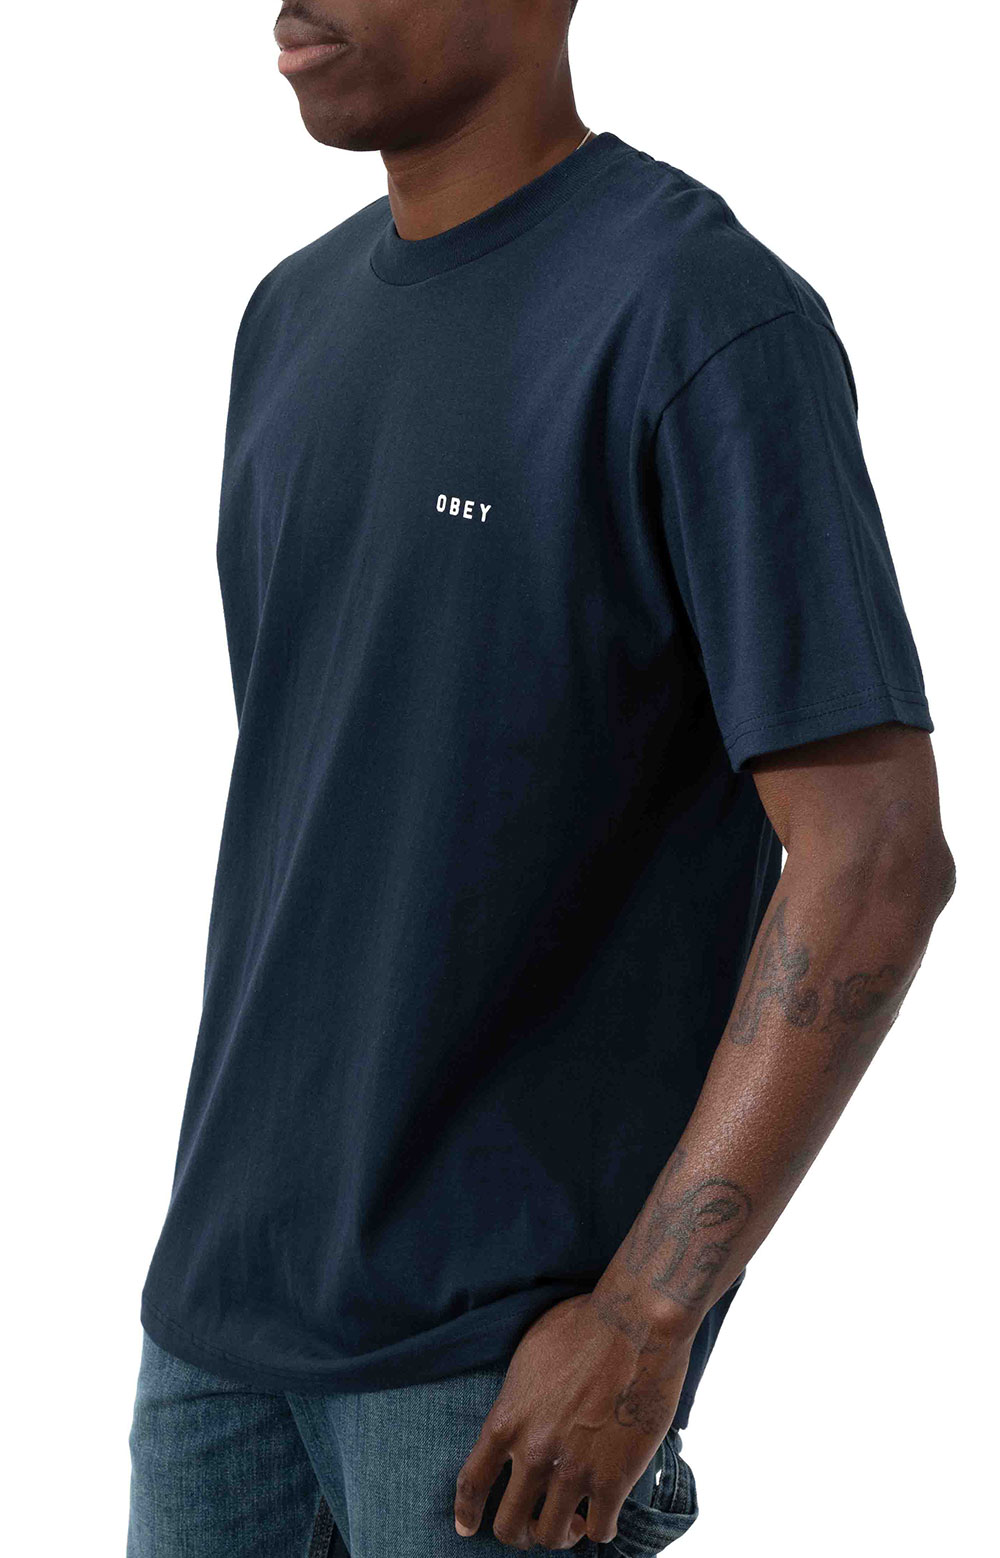 Obey Dissent & Chaos Tiger T-Shirt - Navy  3